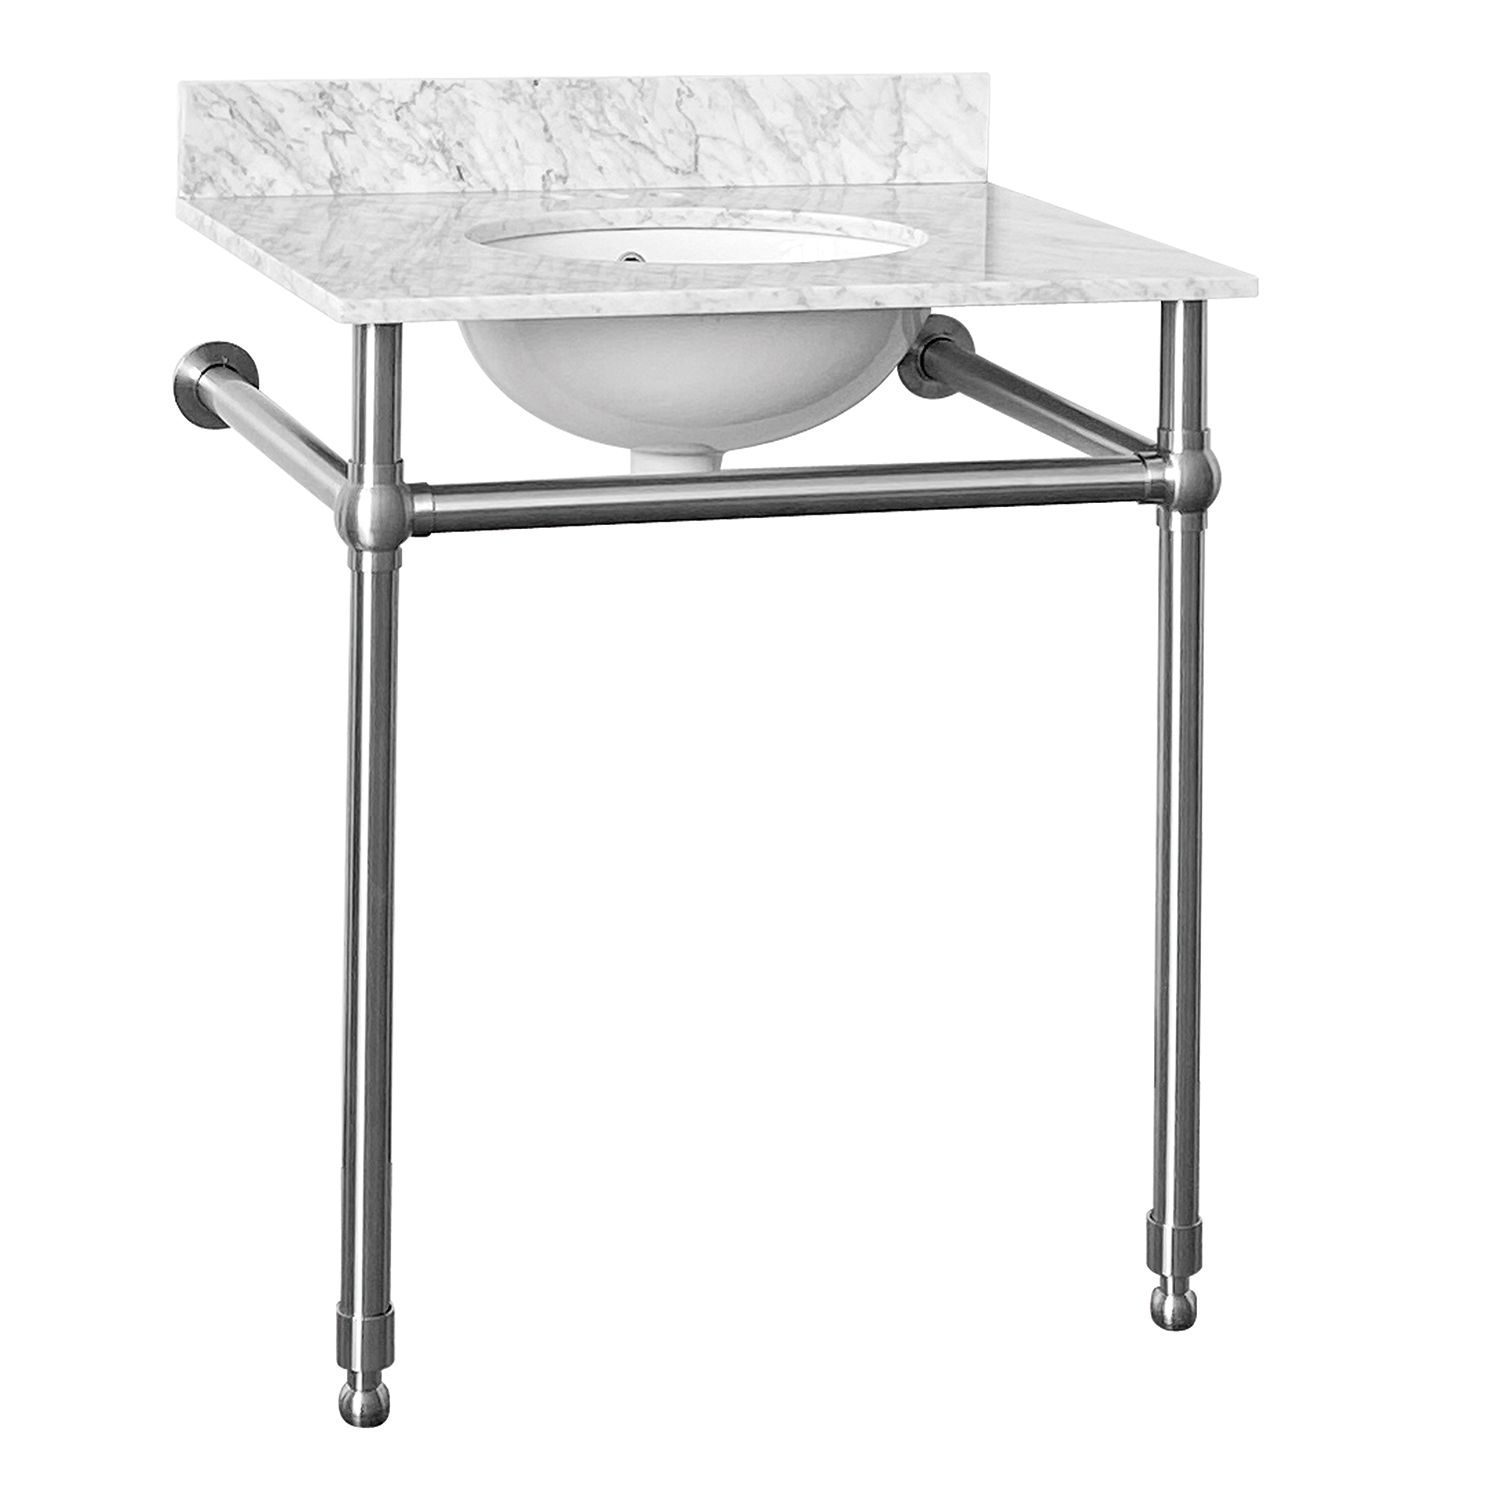 30 inch console sink with stainless steel legs